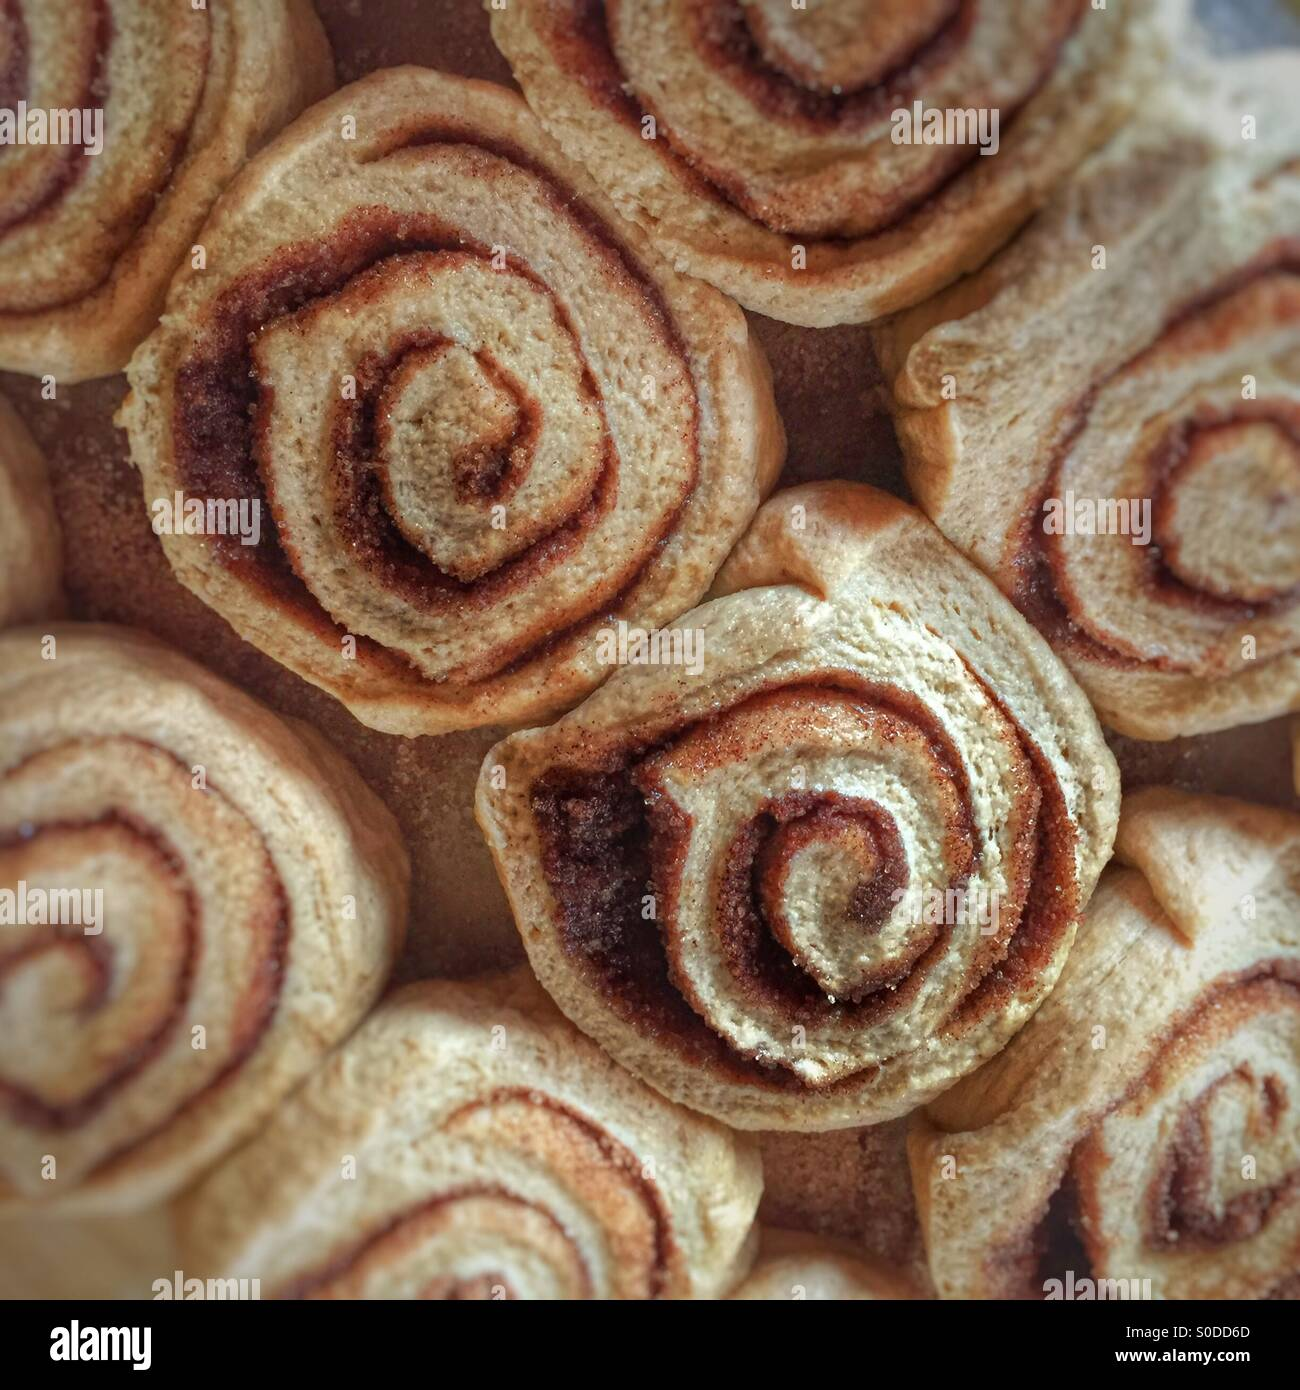 Pan of homemade unbaked cinnamon rolls ready to be baked in the oven - Stock Image